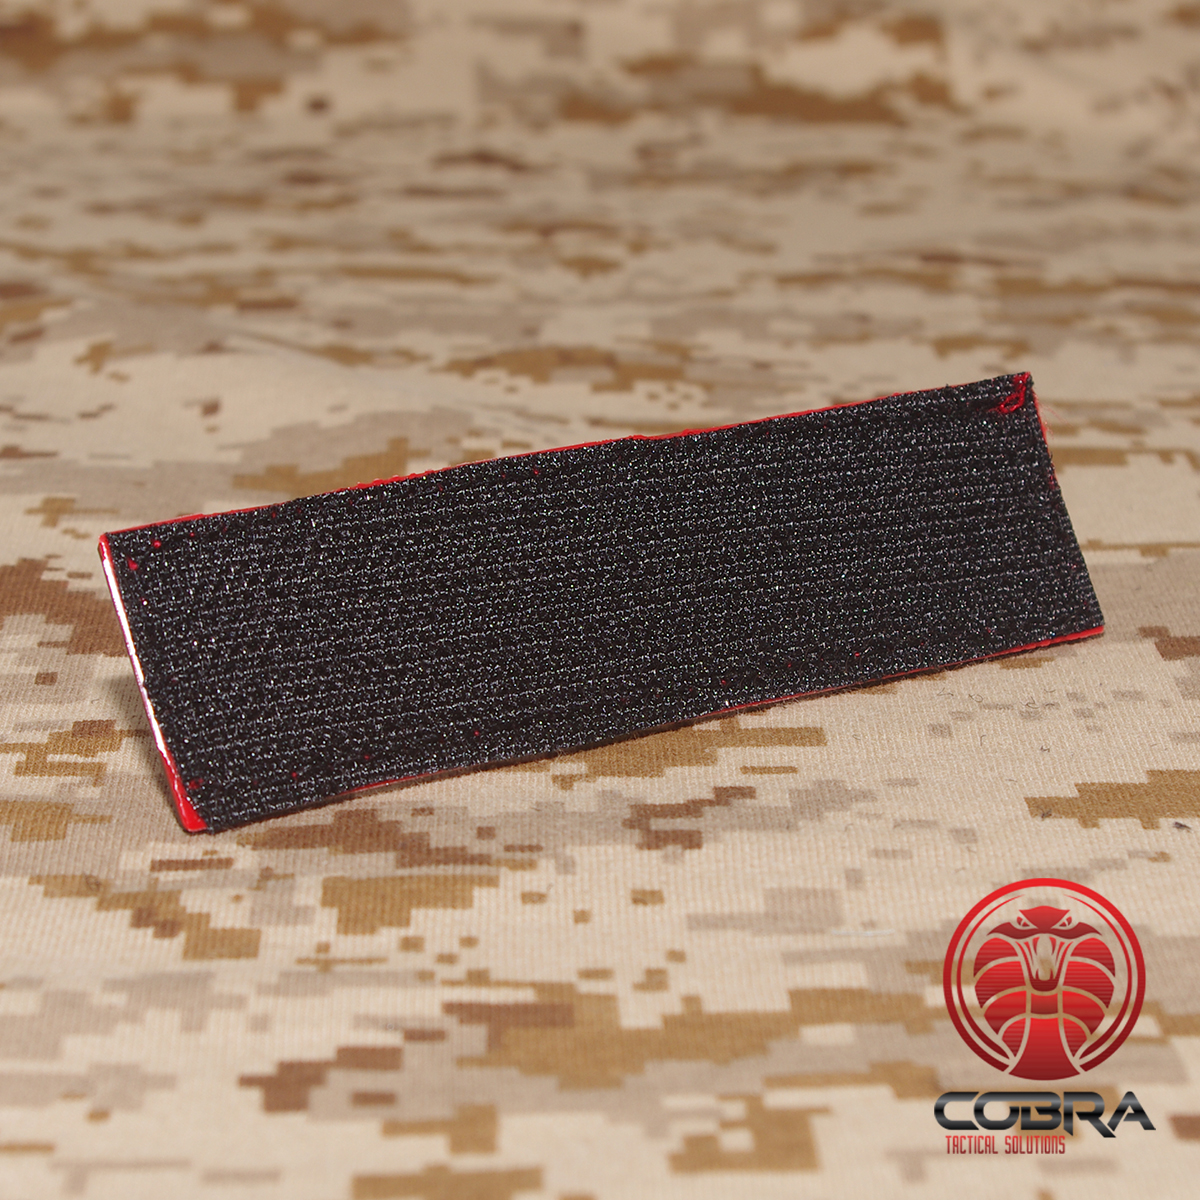 Cobra Tactical Solutions Besticktes Patch Force Recon Swift Deadly with Hook /& Loop for Cosplay//Airsoft//Paintball Silent